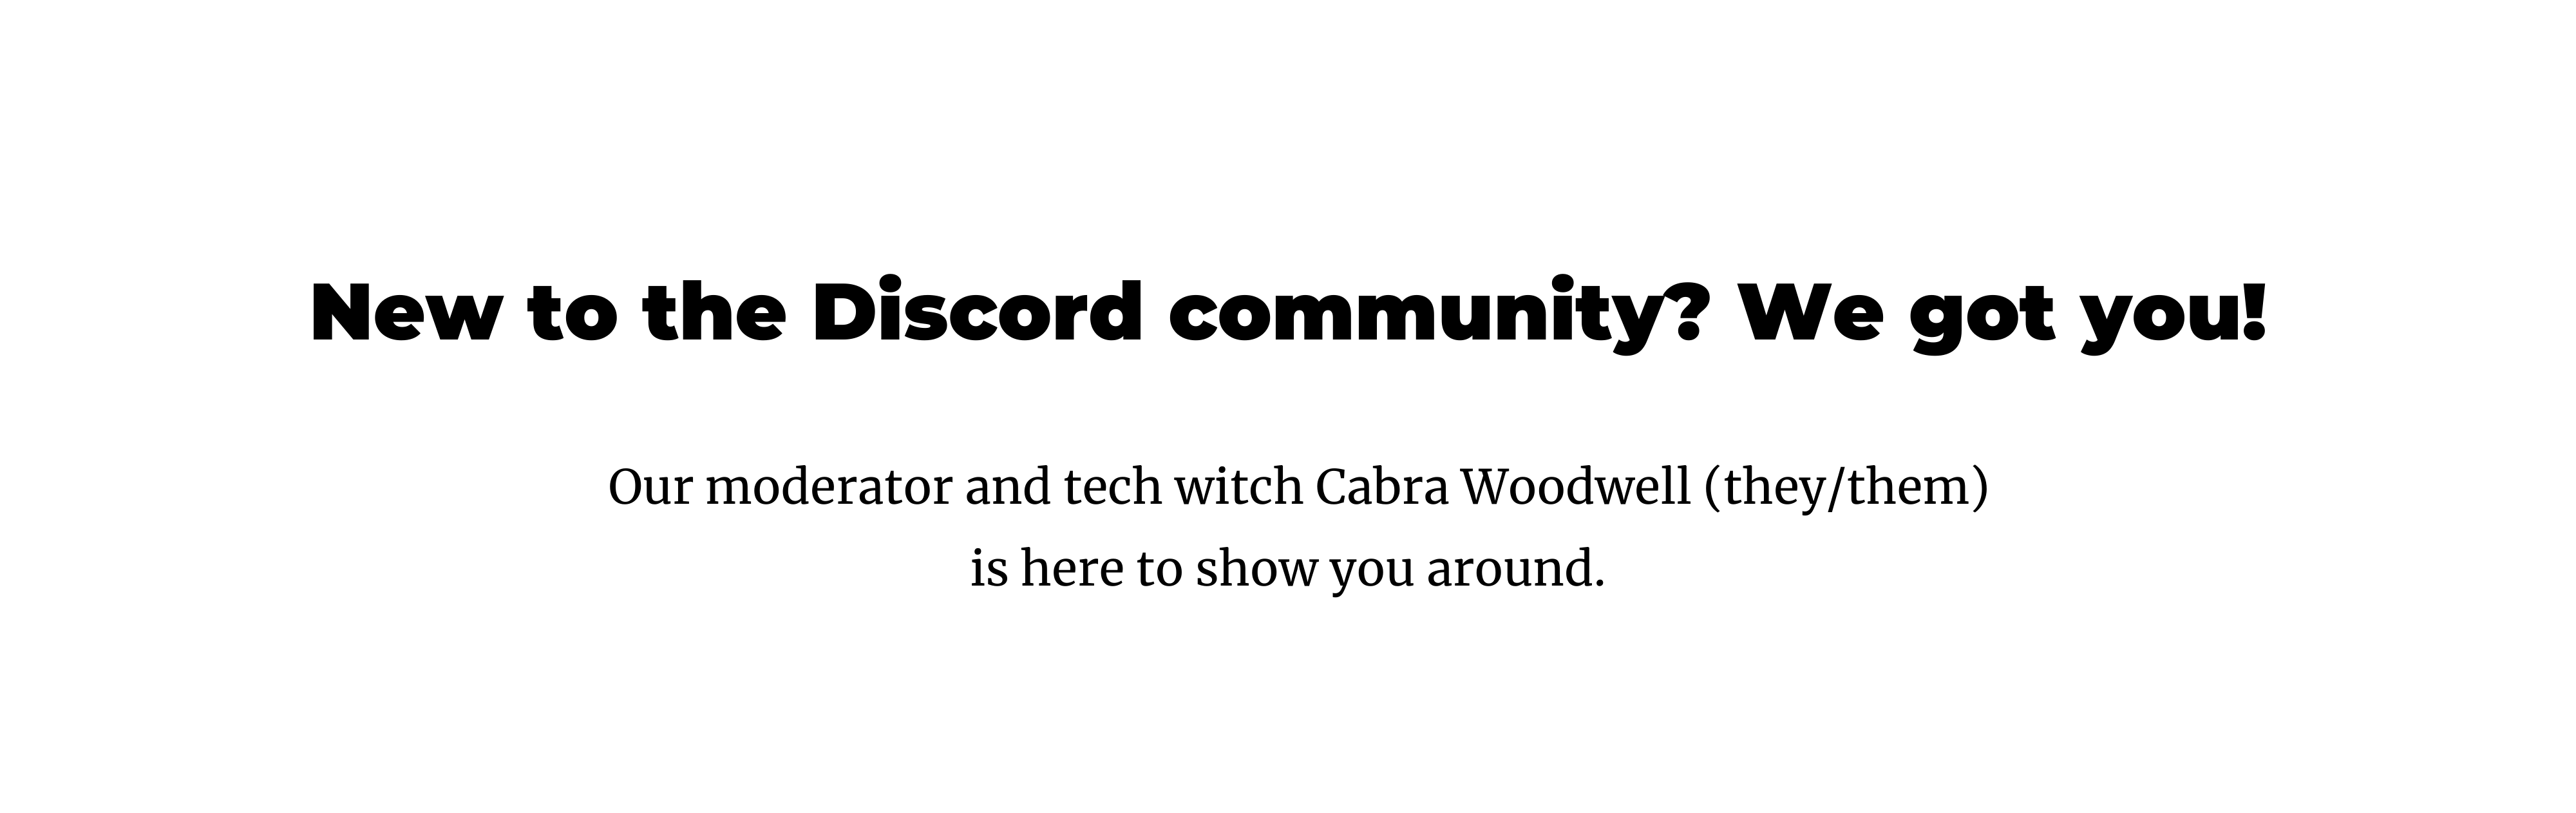 New to the Discord community? We got you! Our moderator and tech witch Cabra Woodwell (they/them) is here to show you around.